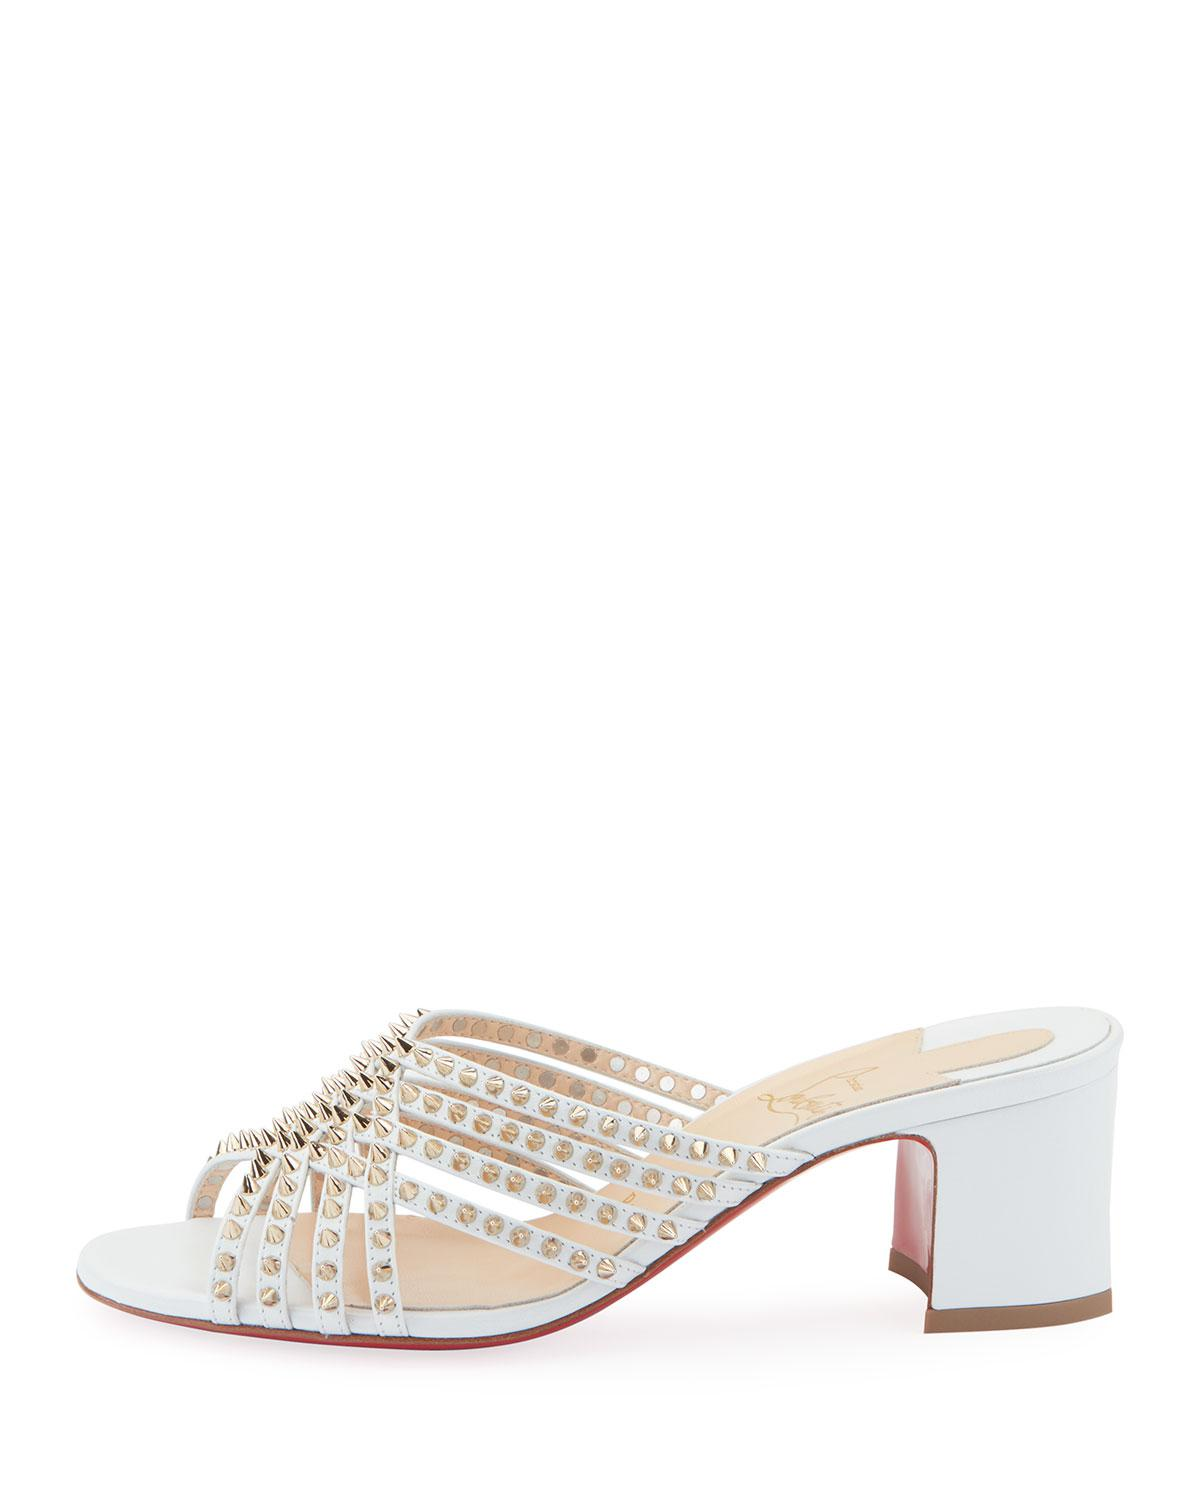 Red Sole Sandals